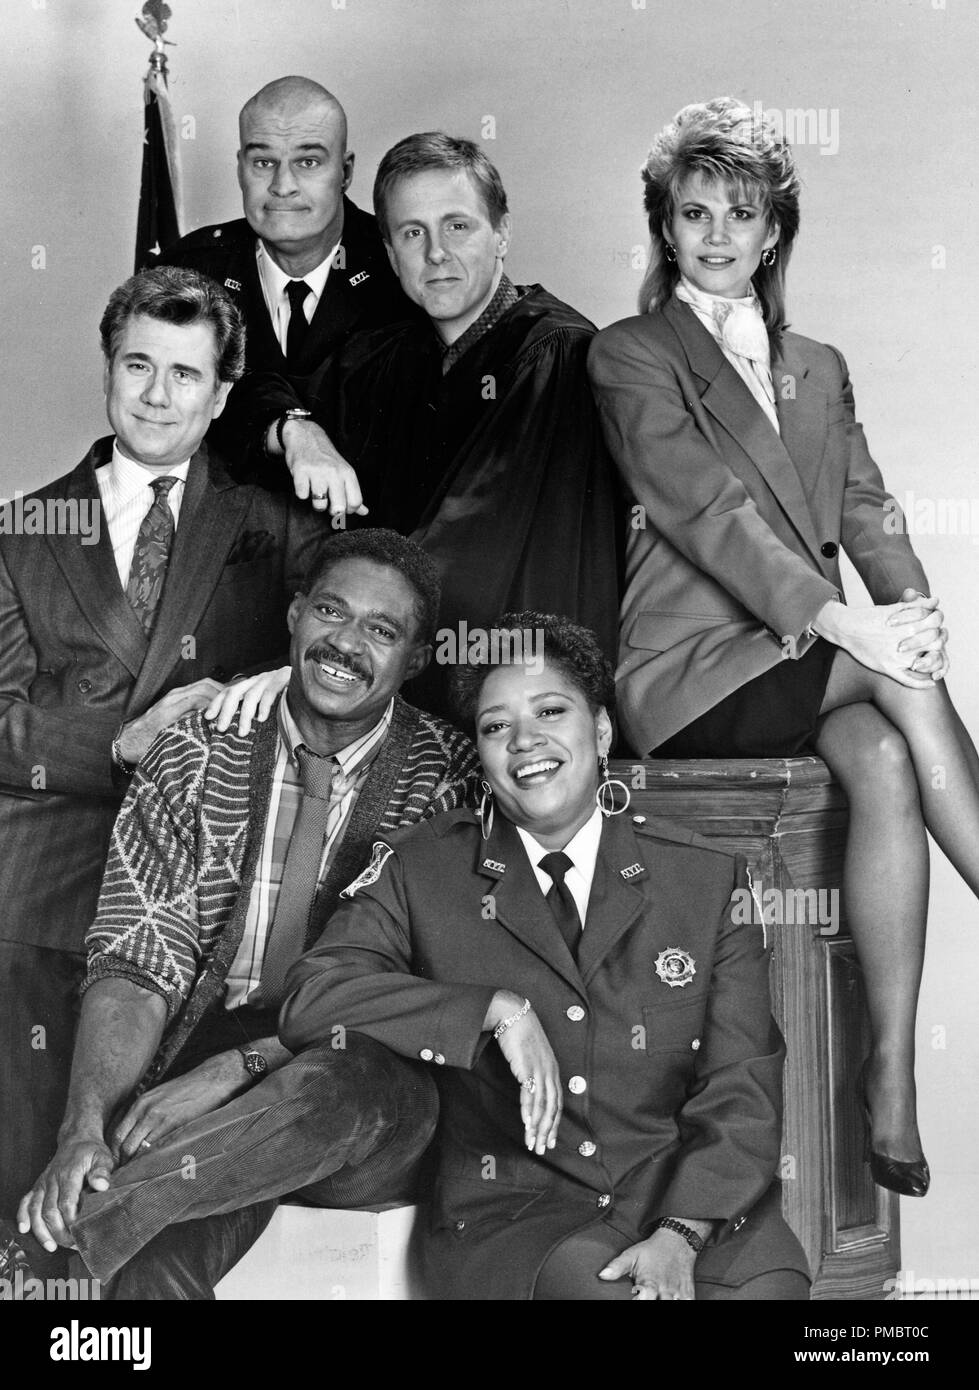 Studio Publicity Still from 'Night Court'  John Larroquette, Richard Moll, Harry Anderson, Markie Post, Marsha Warfield and Charles Robinson  1987  All Rights Reserved   File Reference # 32914_158THA  For Editorial Use Only - Stock Image